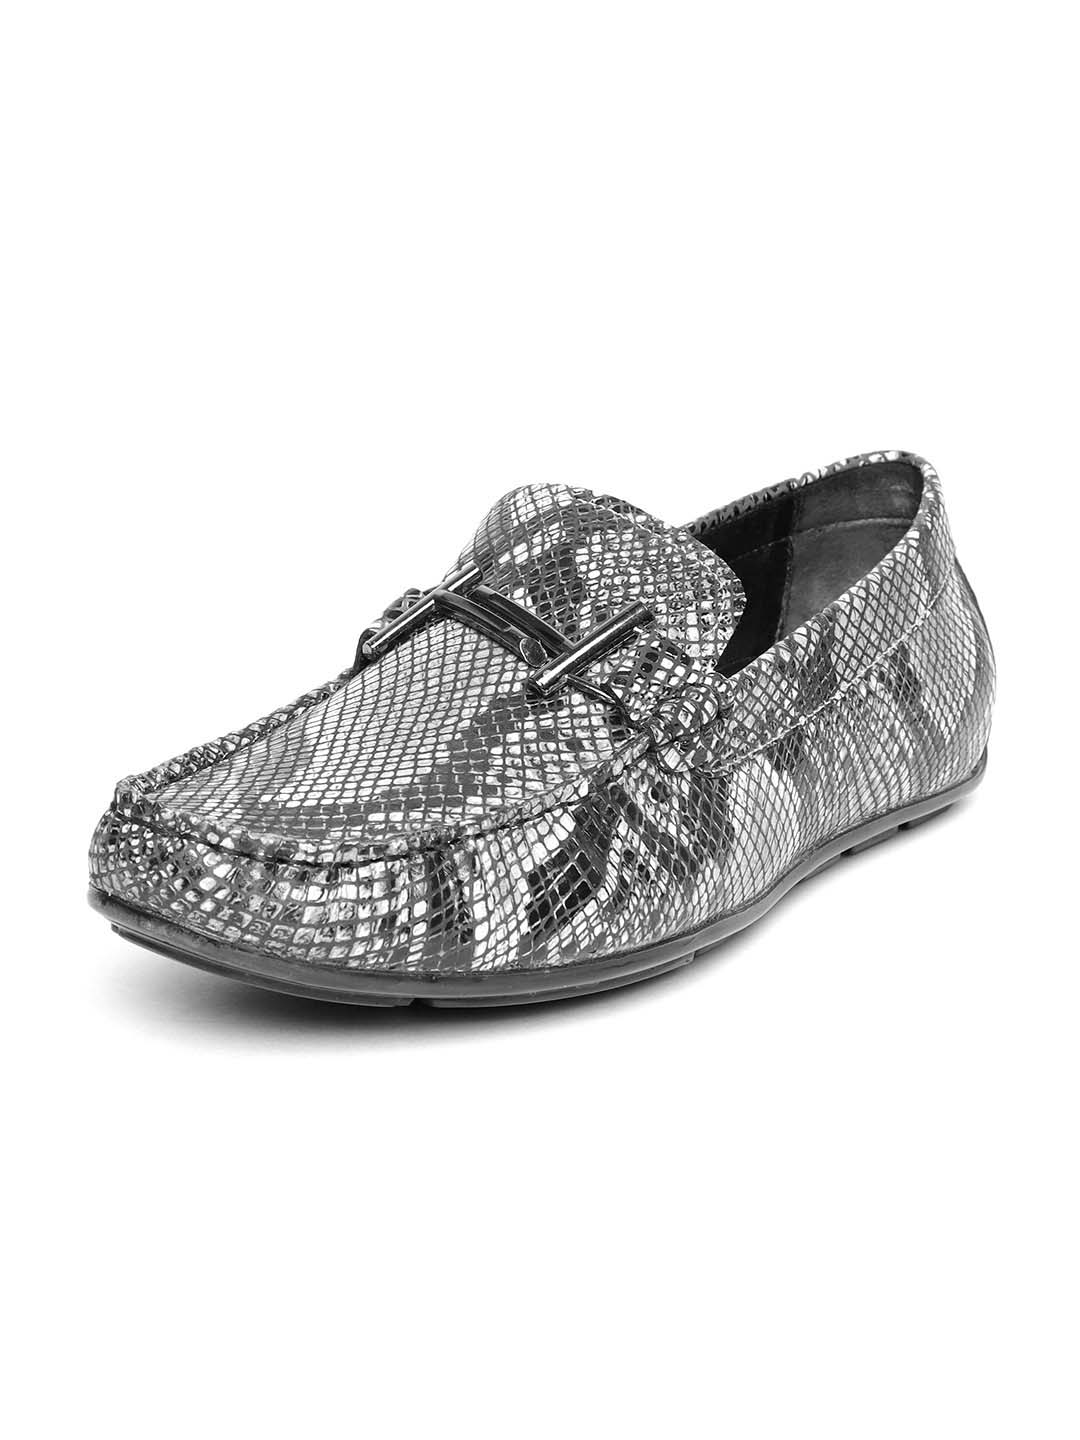 Black Slip-On Python Print Casual Shoes